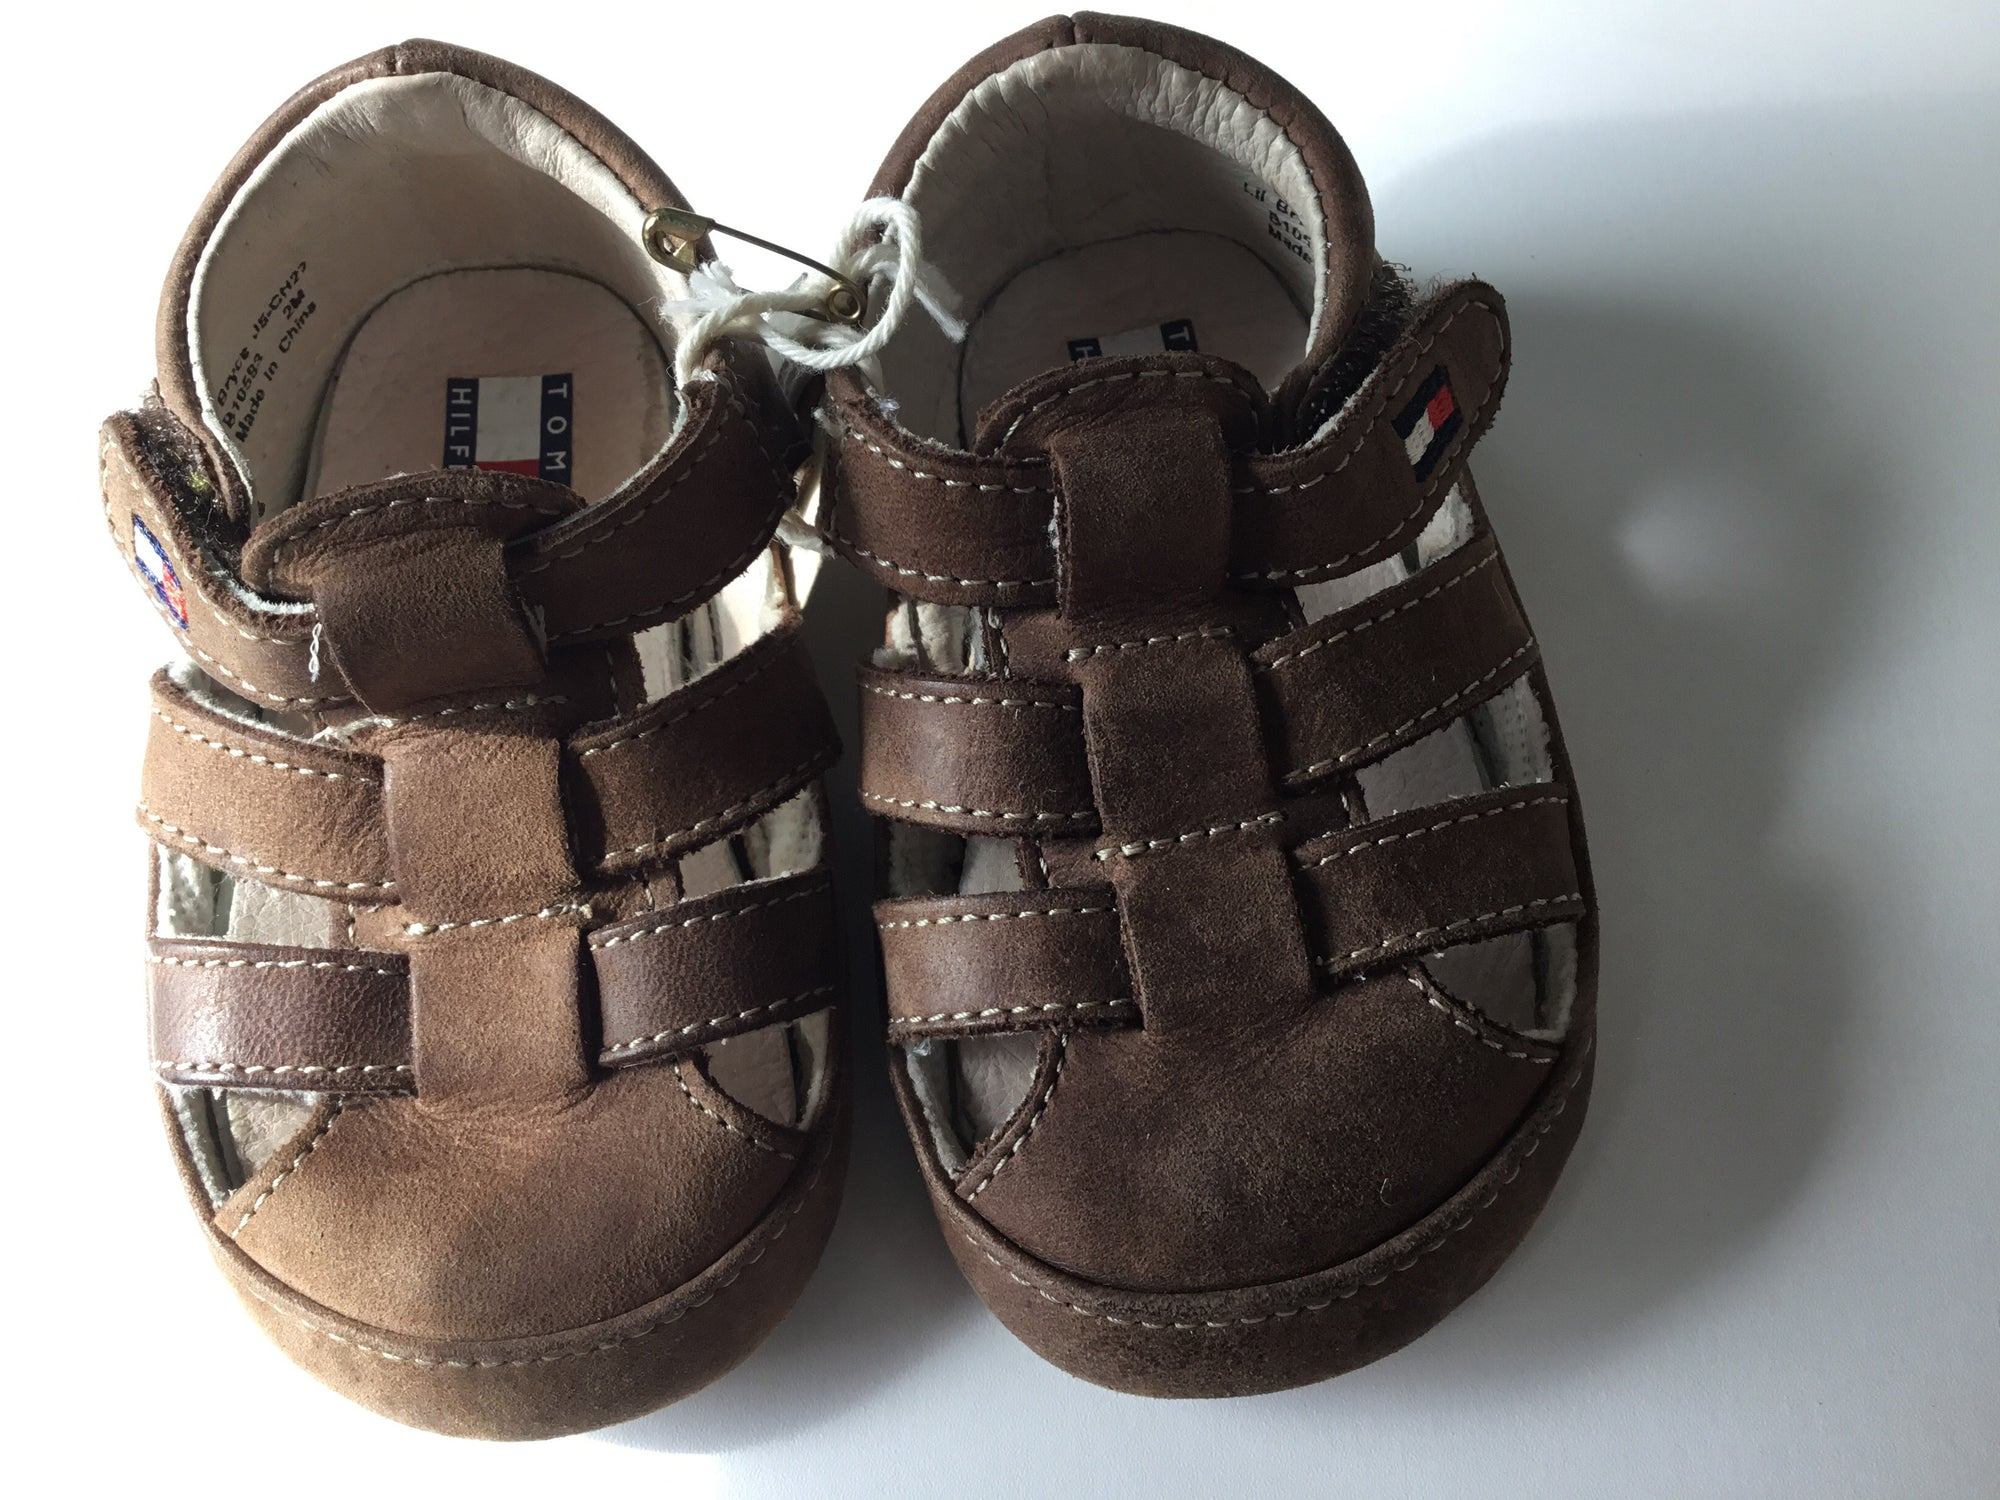 Resale C2 Tommy Hilfiger Tan Sandals